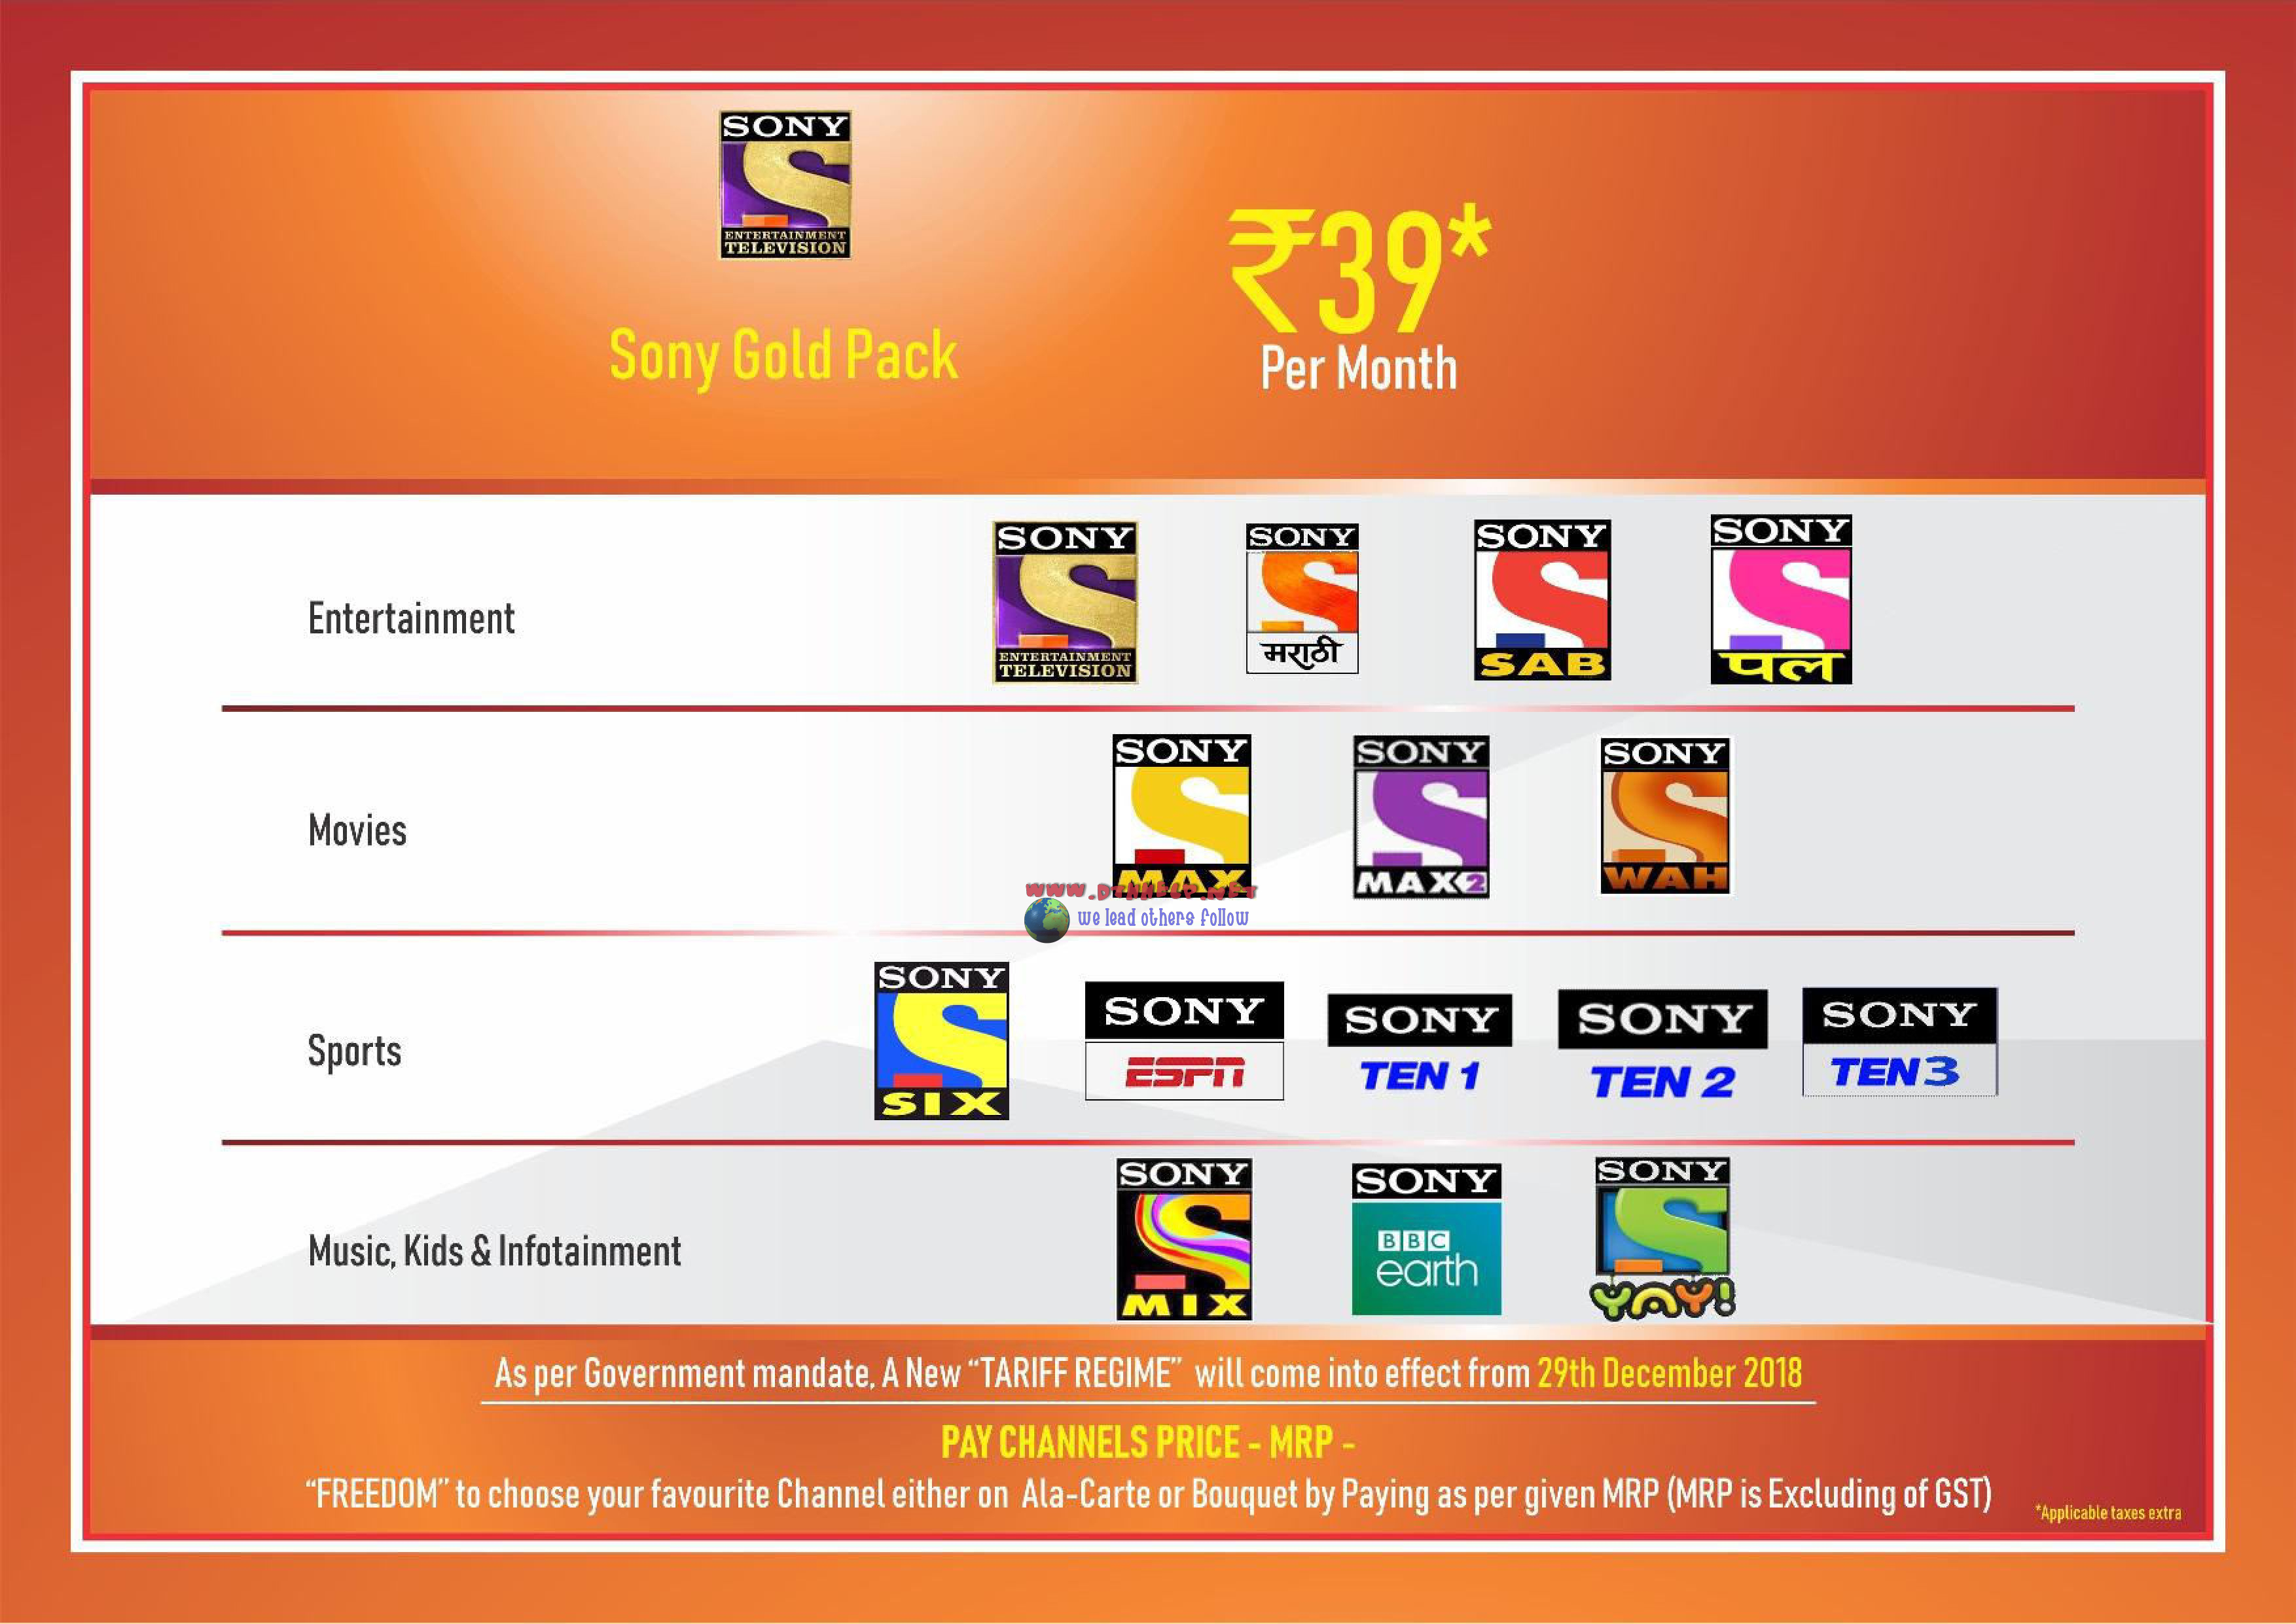 Sony Happy India marathi pack